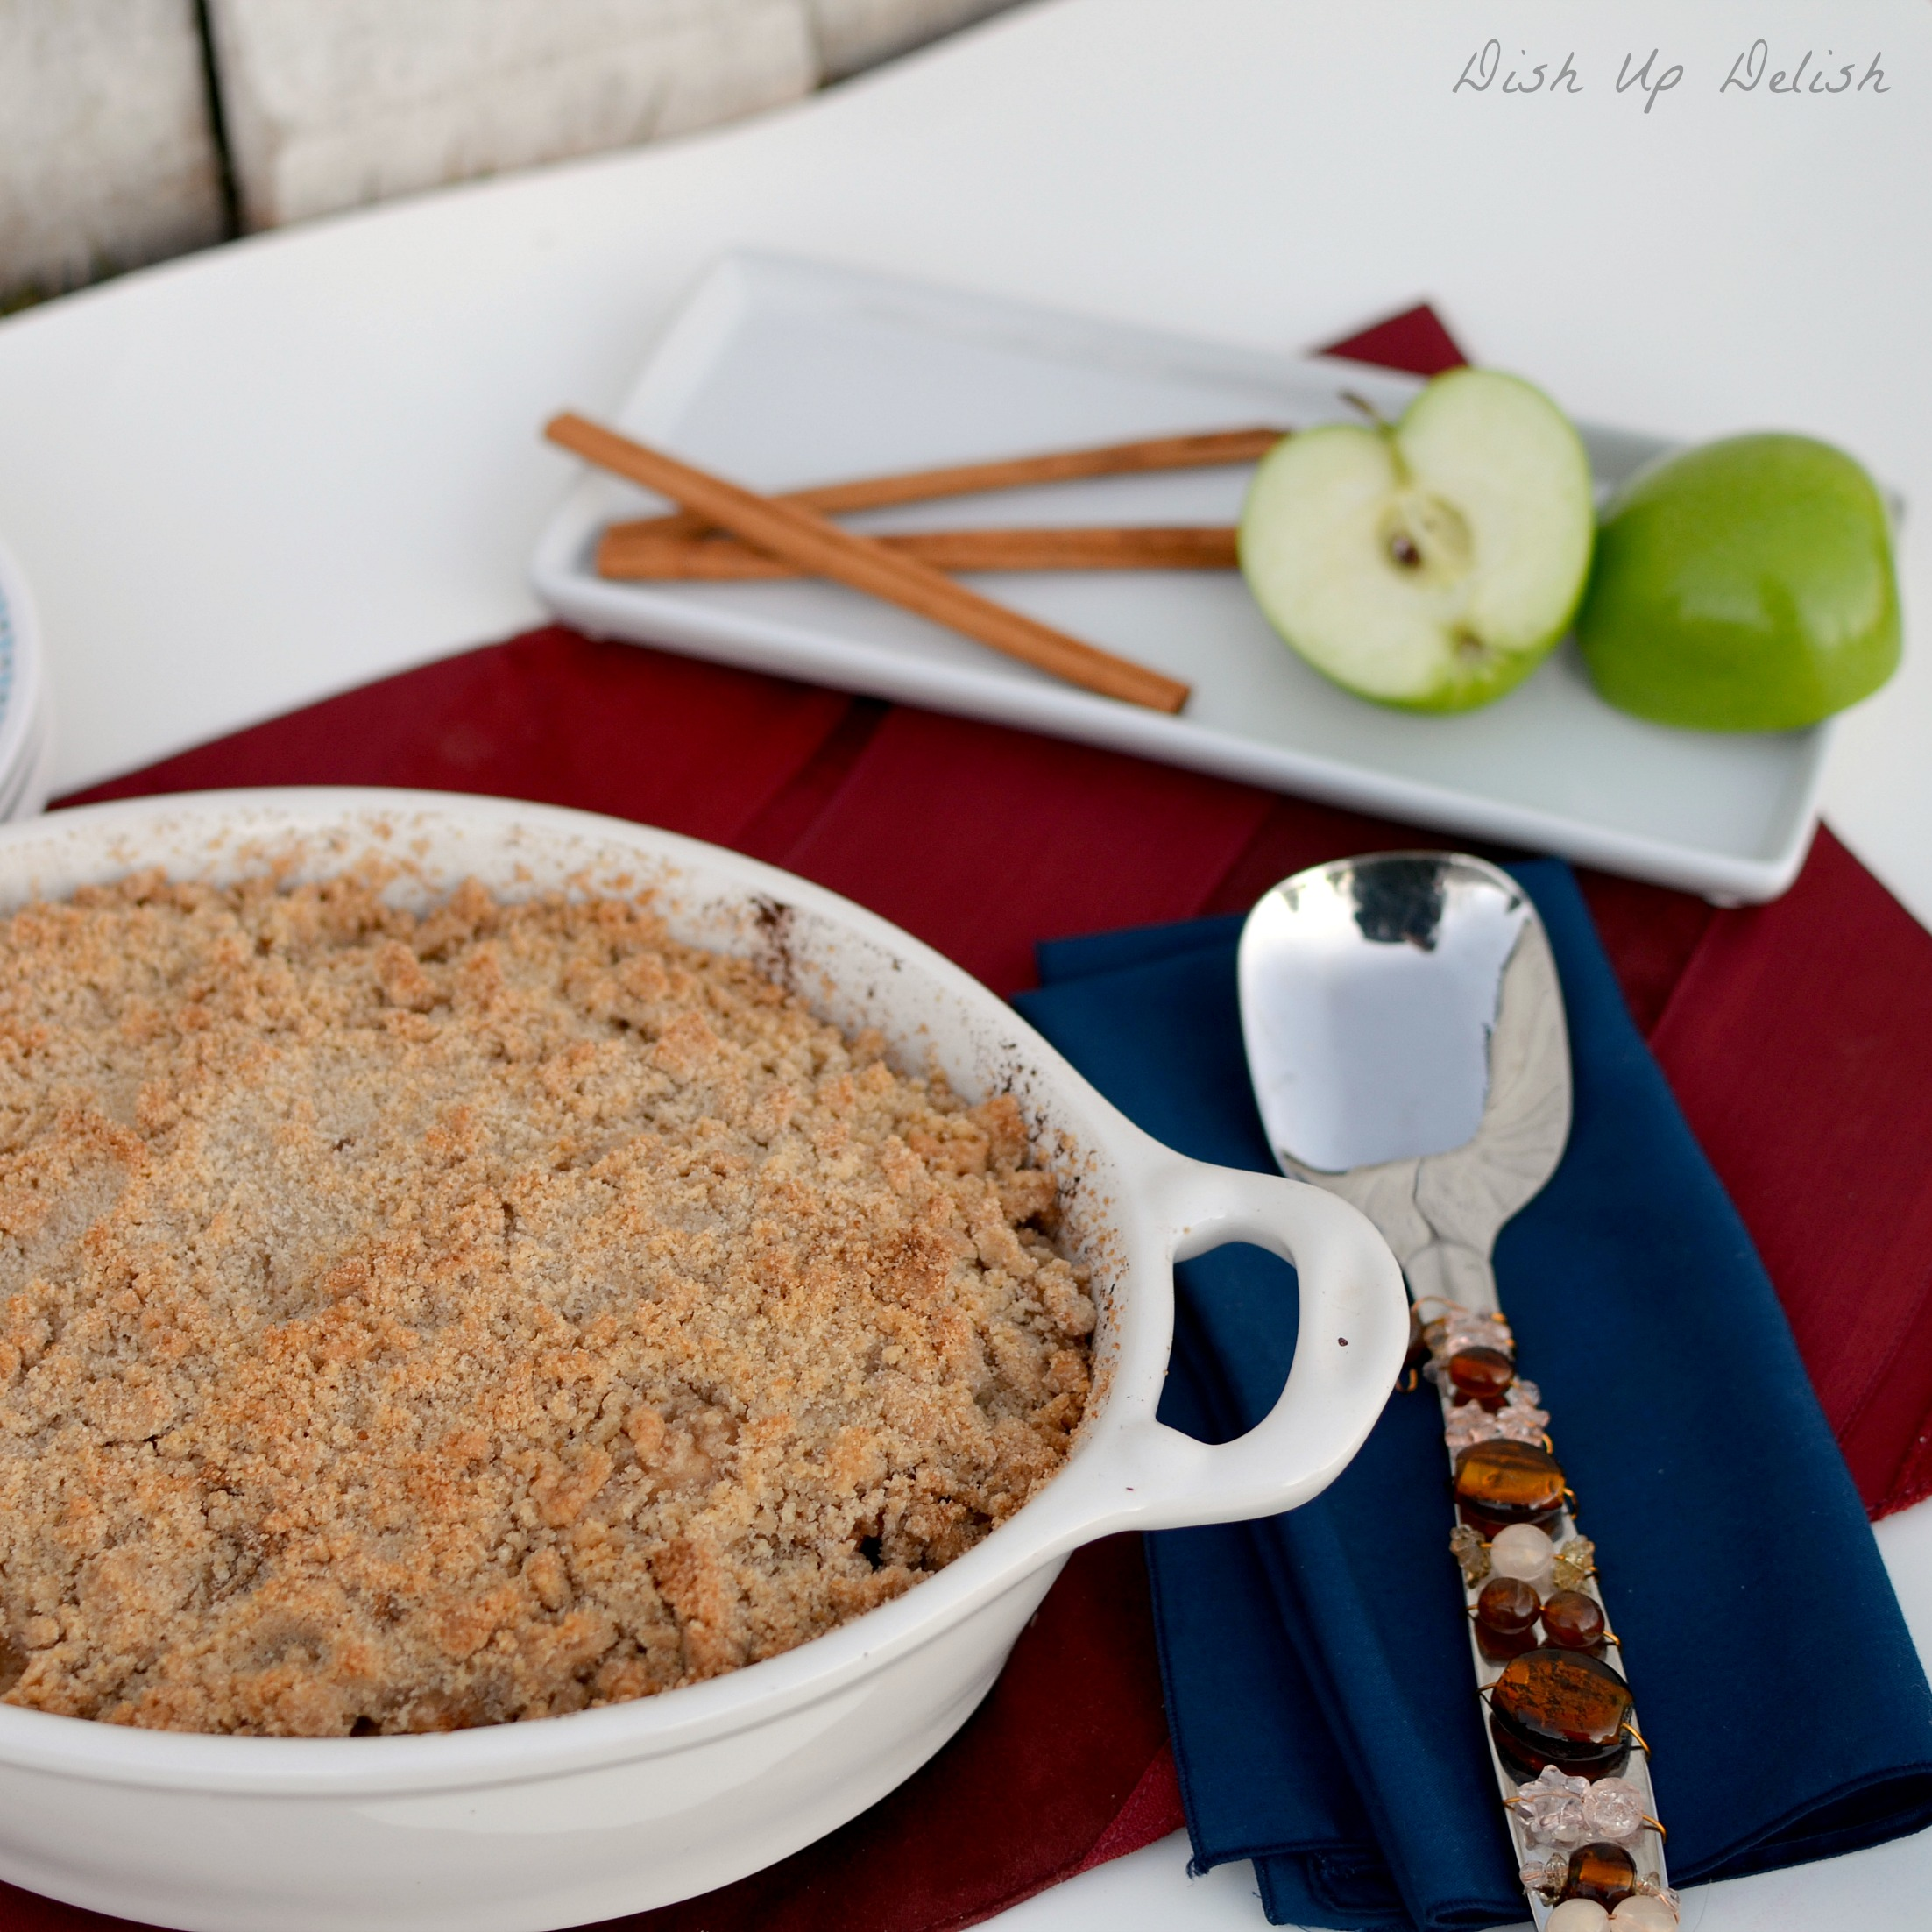 Apple Crisp Dish Up Delish